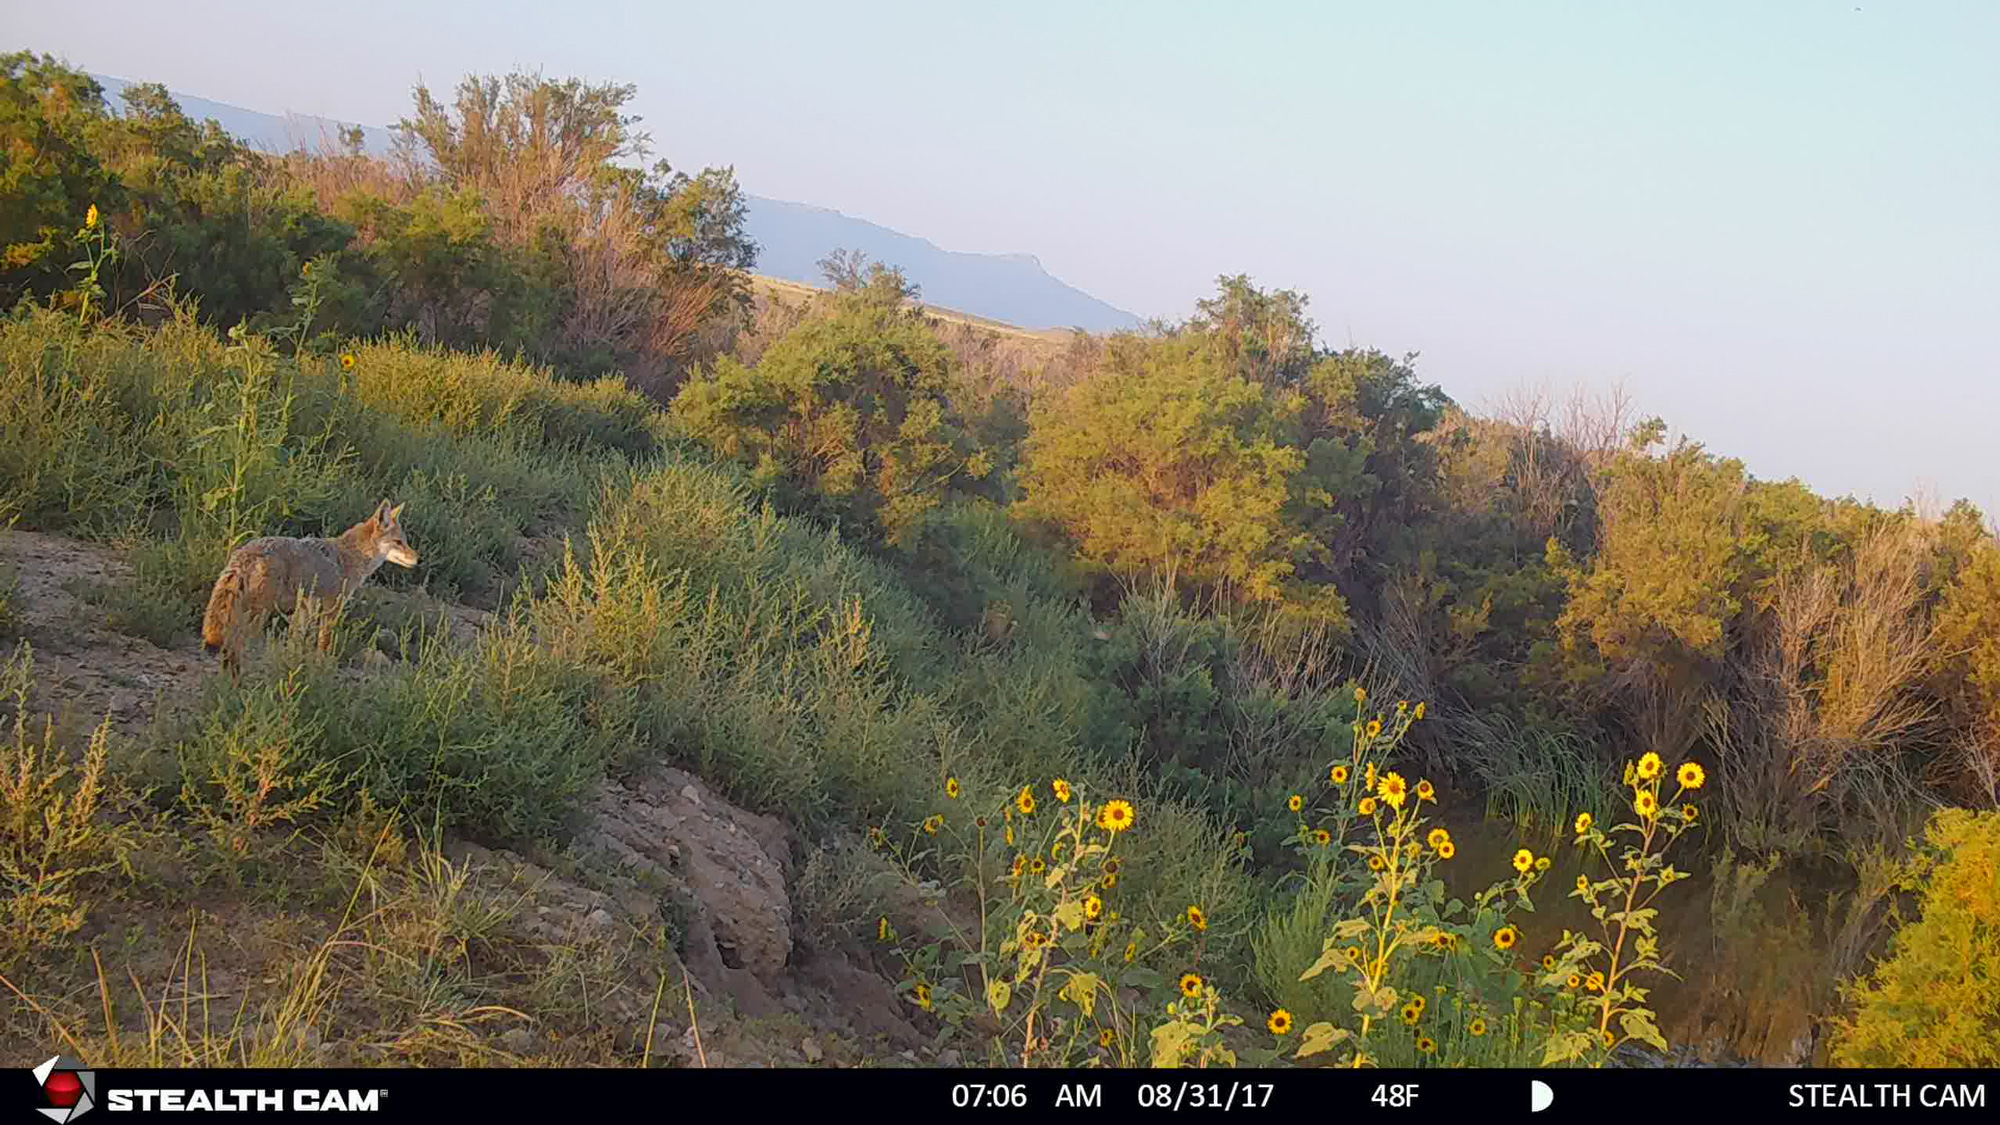 Coyote on a trail camera